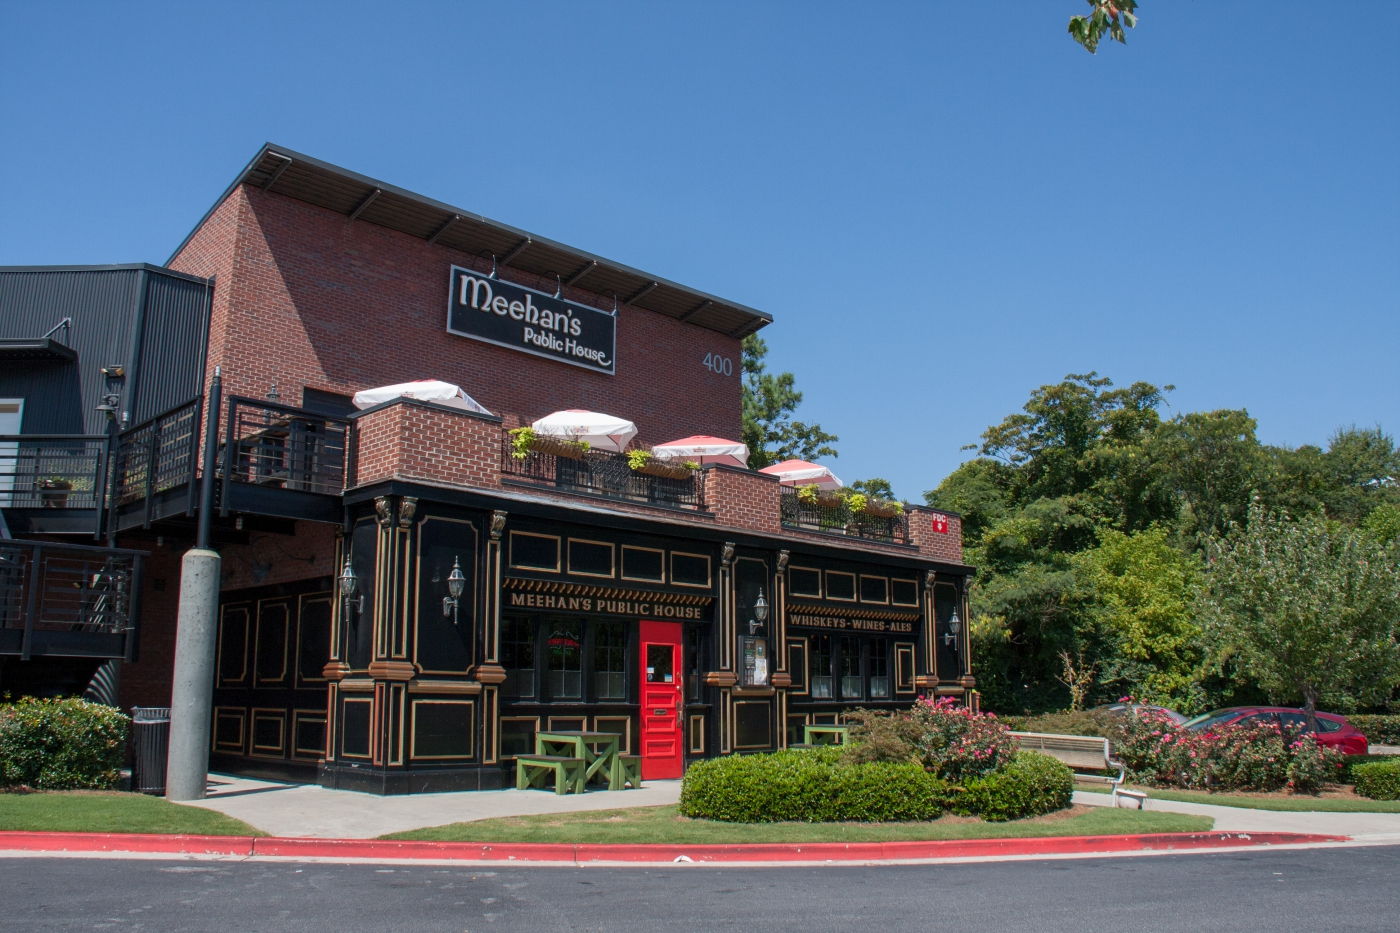 Get a great Irish-inspired meal at Meehan's Public House.